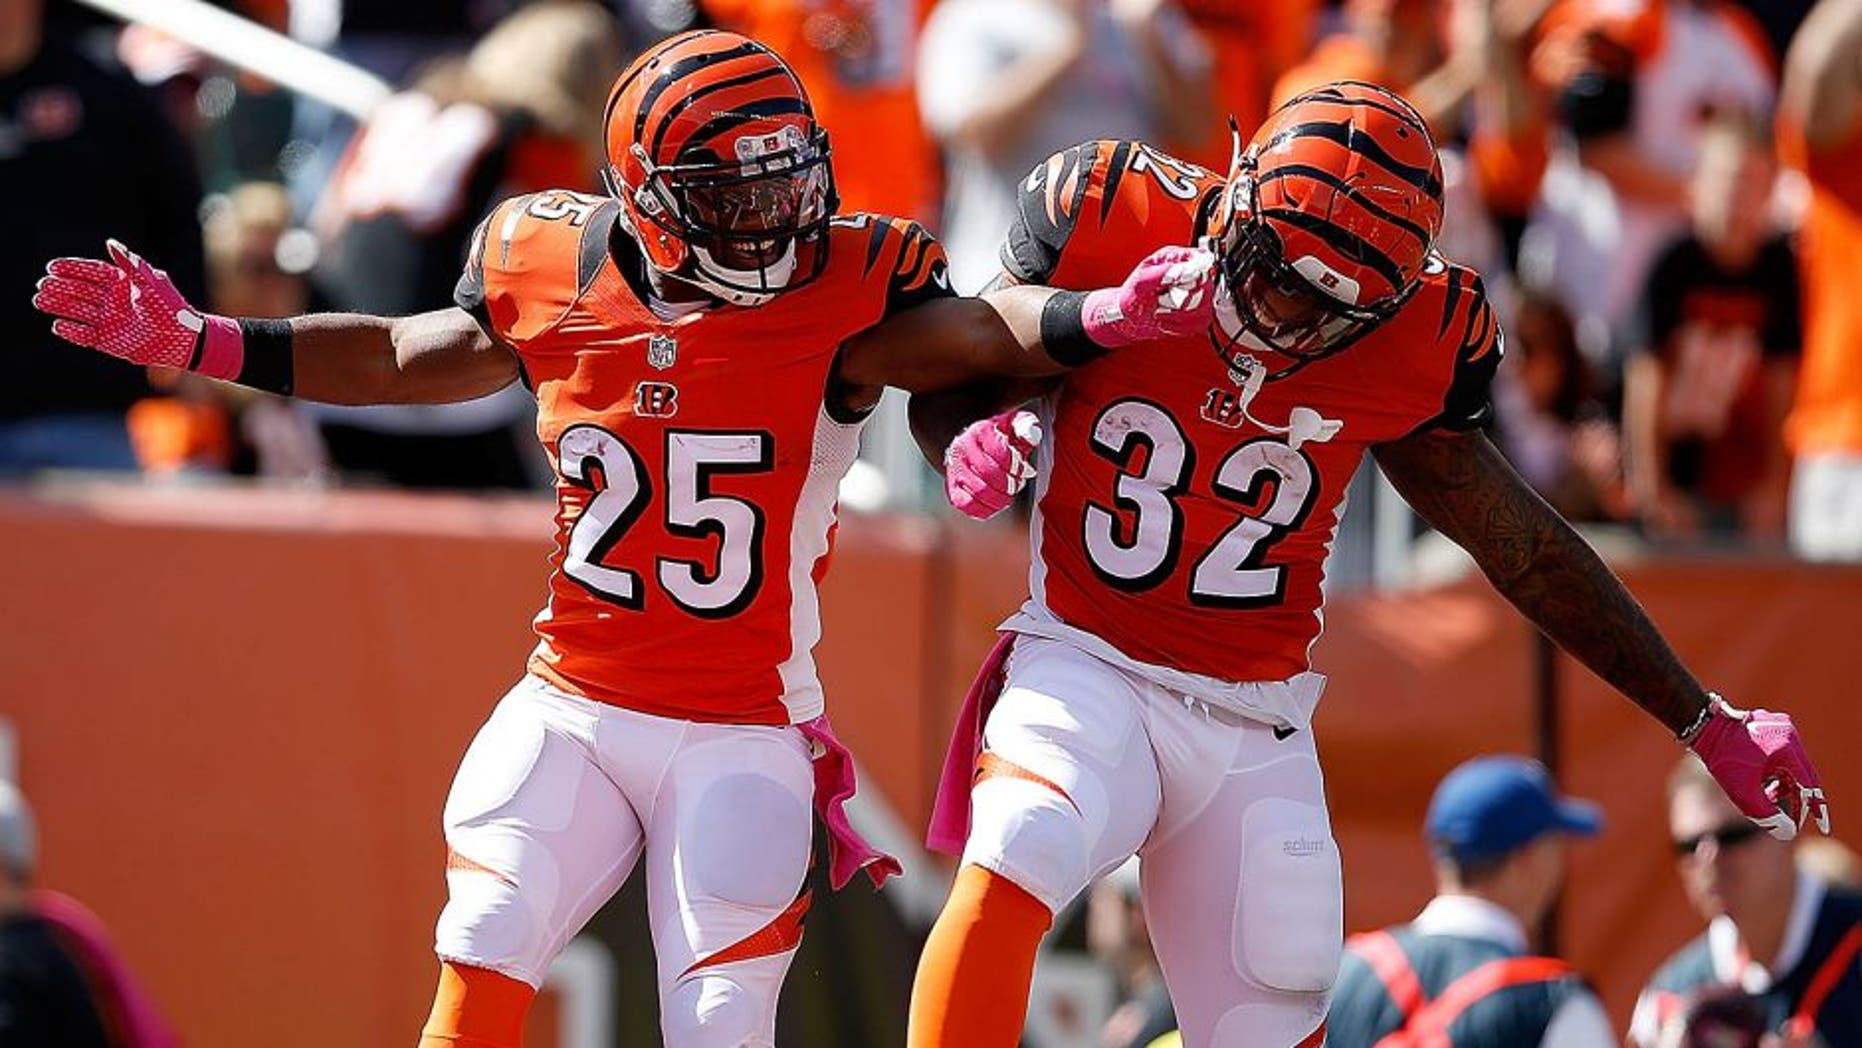 CINCINNATI, OH - OCTOBER 4: Giovani Bernard #25 of the Cincinnati Bengals is congratulated by Jeremy Hill #32 of the Cincinnati Bengals after scoring a touchdown during the first quarter of the game against the Kansas City Chiefs at Paul Brown Stadium on October 4, 2015 in Cincinnati, Ohio. (Photo by Joe Robbins/Getty Images)